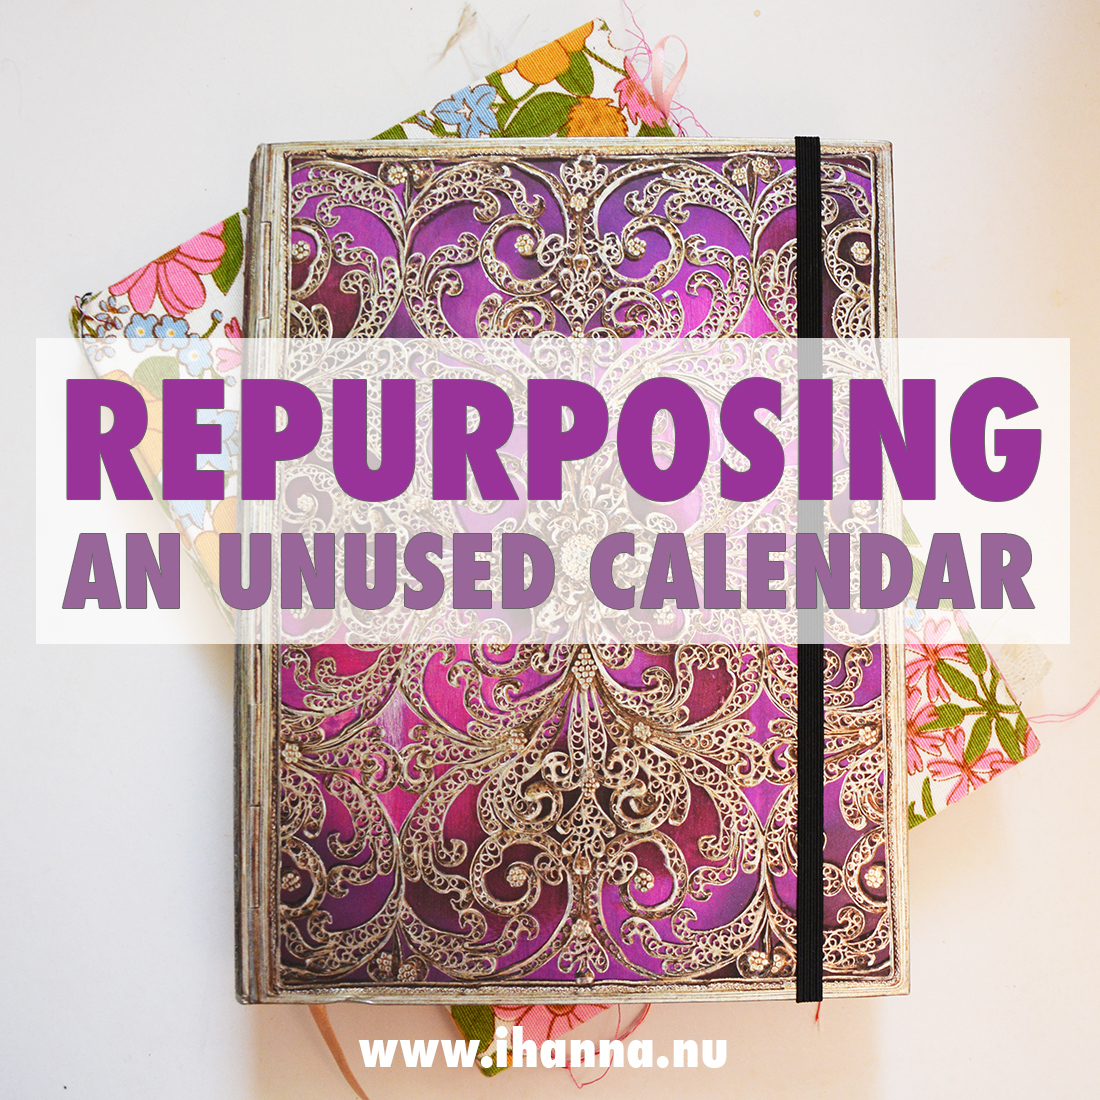 Re-using an Unused Calendar